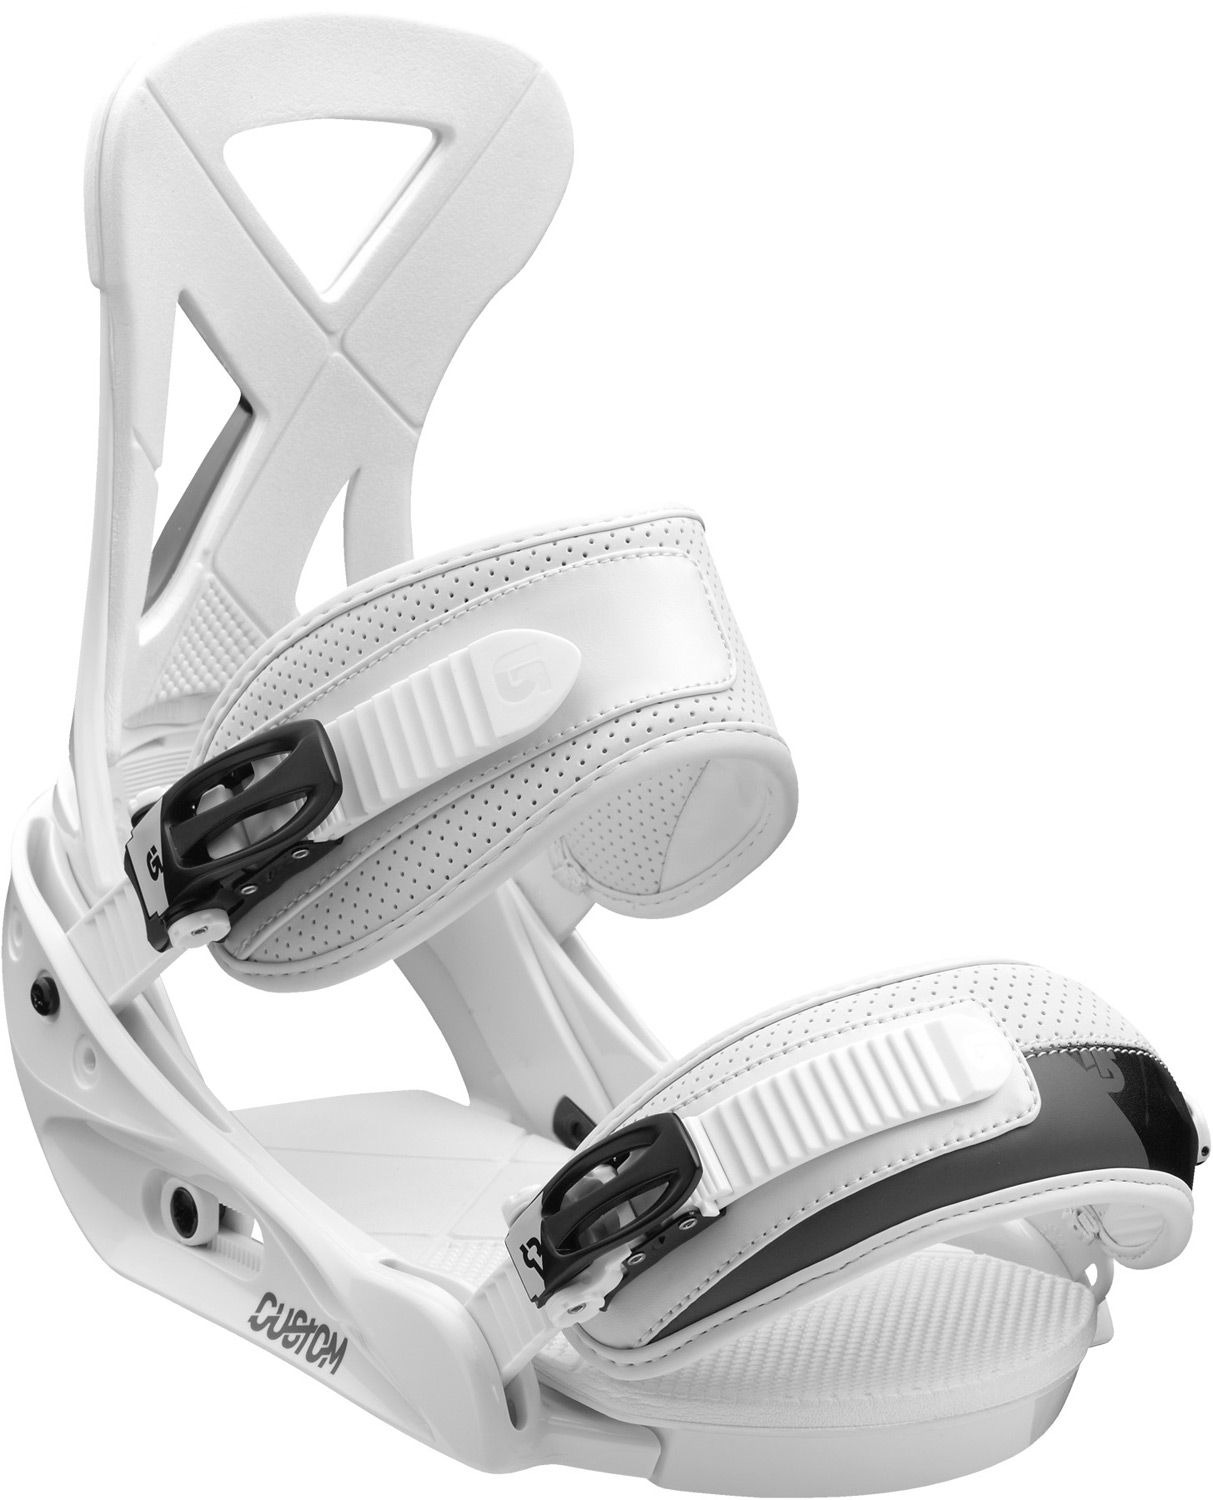 Snowboard Surfy, playful, and capable. The tried-and-true champion.Key Features of the Burton Custom Snowboard Bindings:  Response: 4  Baseplate: Single-Component Lightweight, Bomb-Proof Polycarbonate EST  Hi-Back: Single-Component Canted Living Hinge Hi-Back with DialFLAD  Straps: Lushstrap and Primo Capstrap  Buckles: Smooth Glide Buckles  Cushioning: Removable ShredBED 2.0 Cushioning System - $118.95